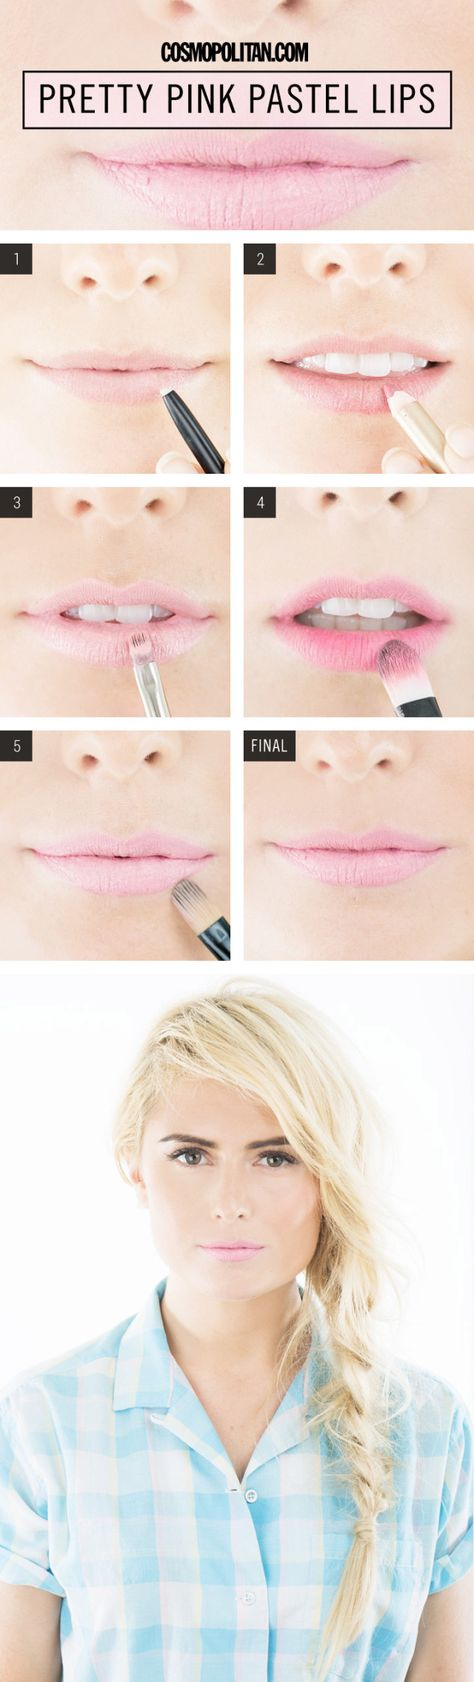 Pretty Pink Pastel Lips How-To - Pale Pink Lip Color Tutorial